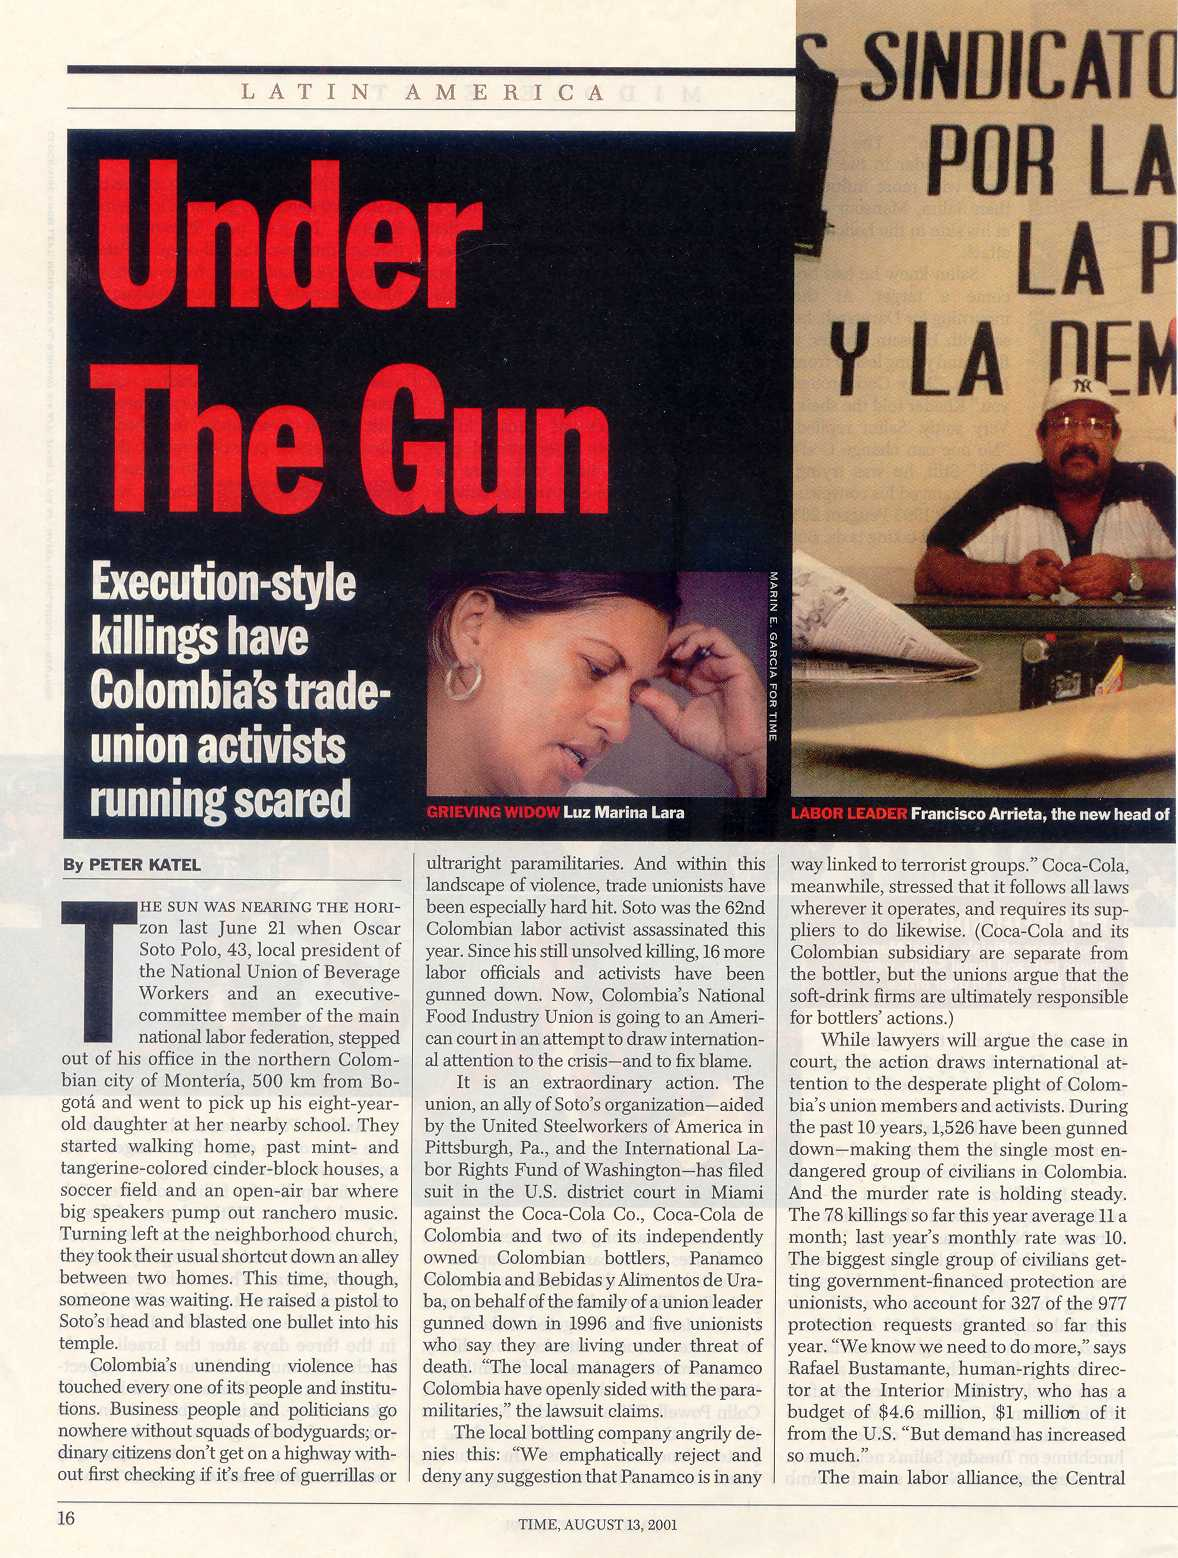 Peter Katel on Colombia Trade Unionist Executions – TIME Magazine (2001)